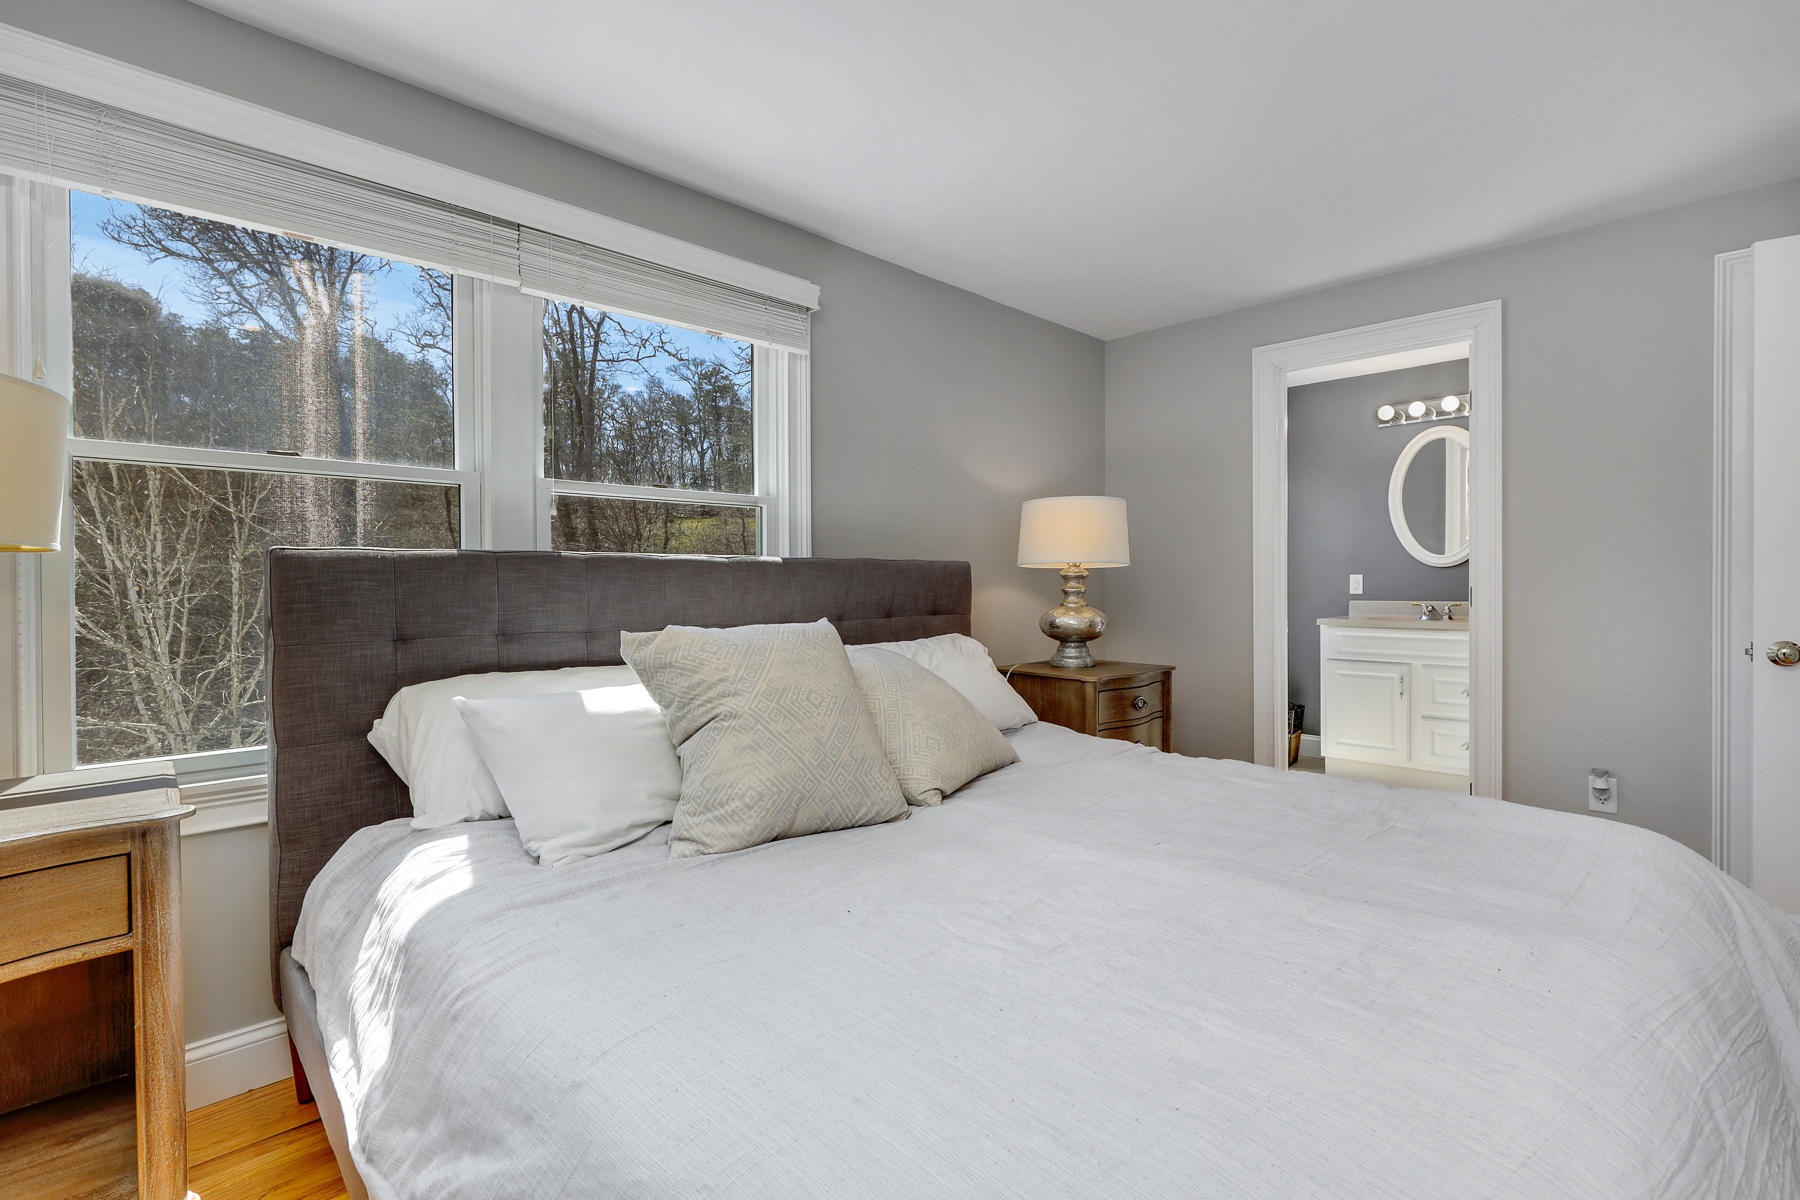 40 toms hollow lane orleans ma 02653 property image 64